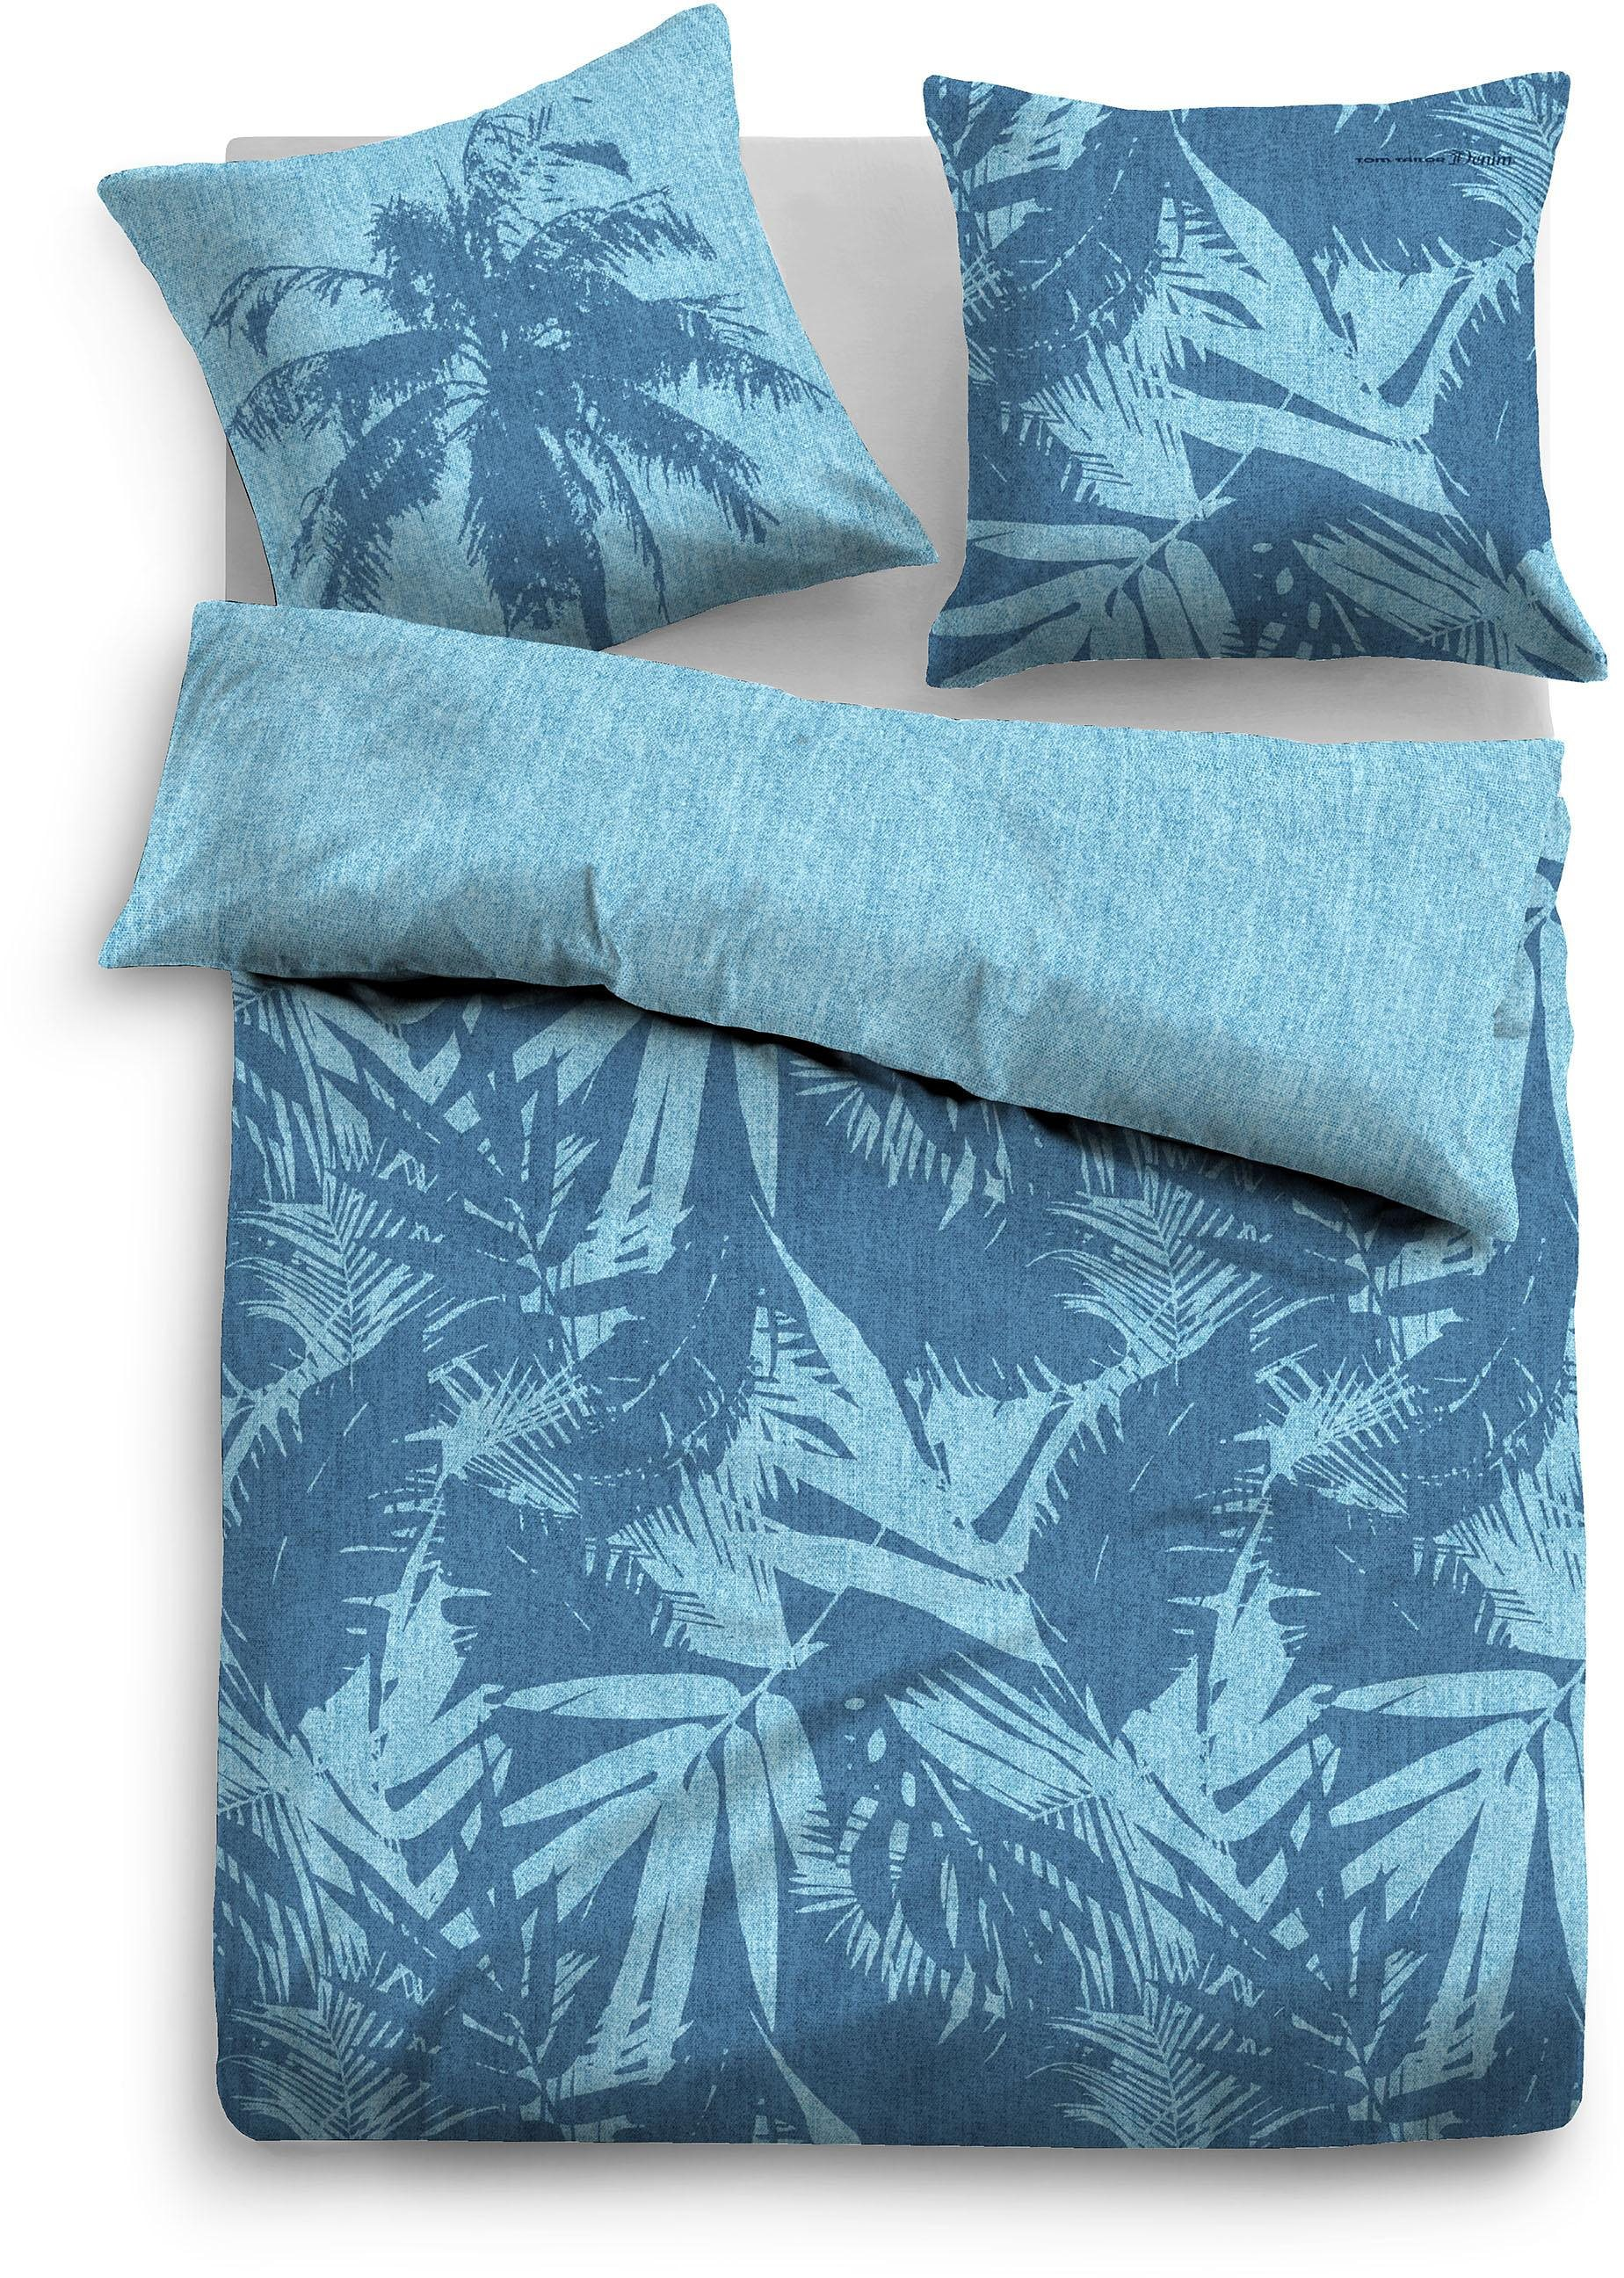 Wendebettwäsche Tom Tailor Palm Tree Mit Palmen Motiven Blau